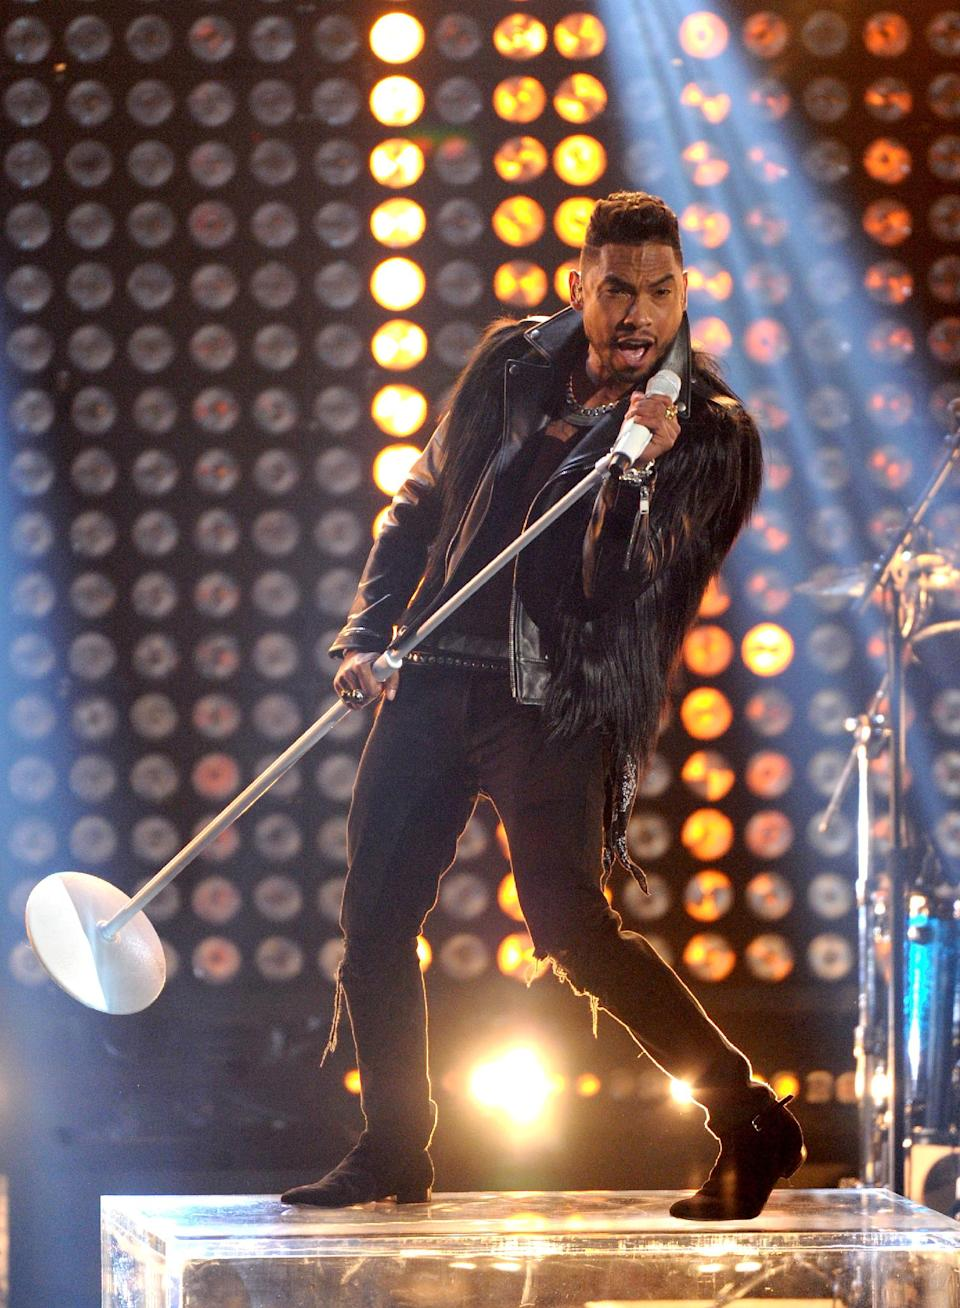 Miguel performs onstage at the BET Awards at the Nokia Theatre on Sunday, June 30, 2013, in Los Angeles. (Photo by Frank Micelotta/Invision/AP)